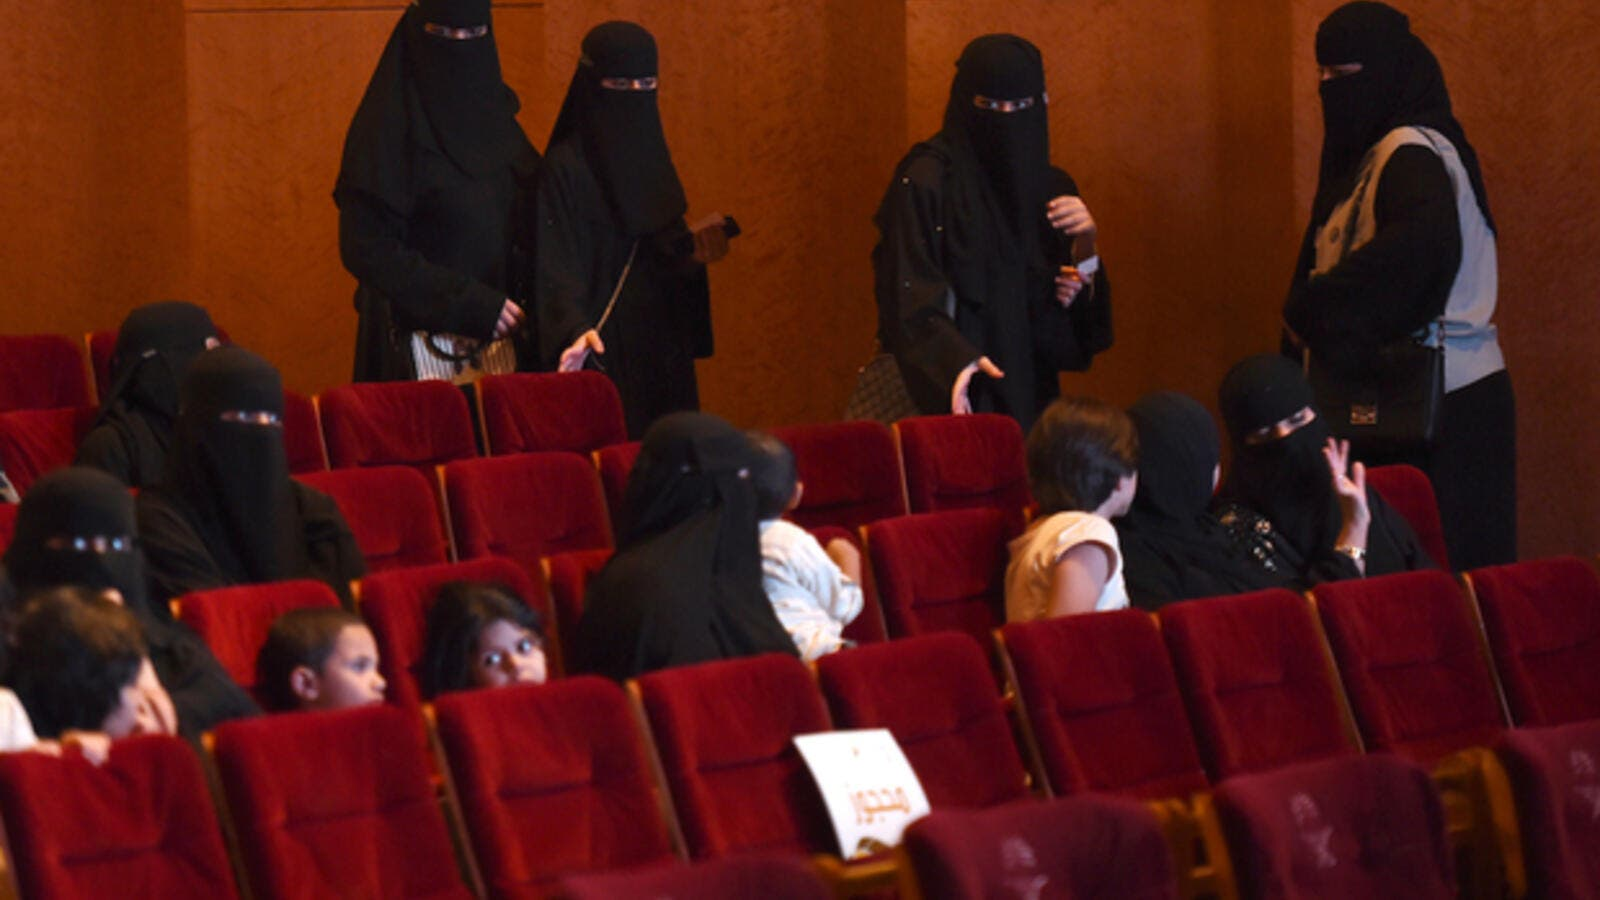 Saudi women in the cinema (AFP/File Photo)